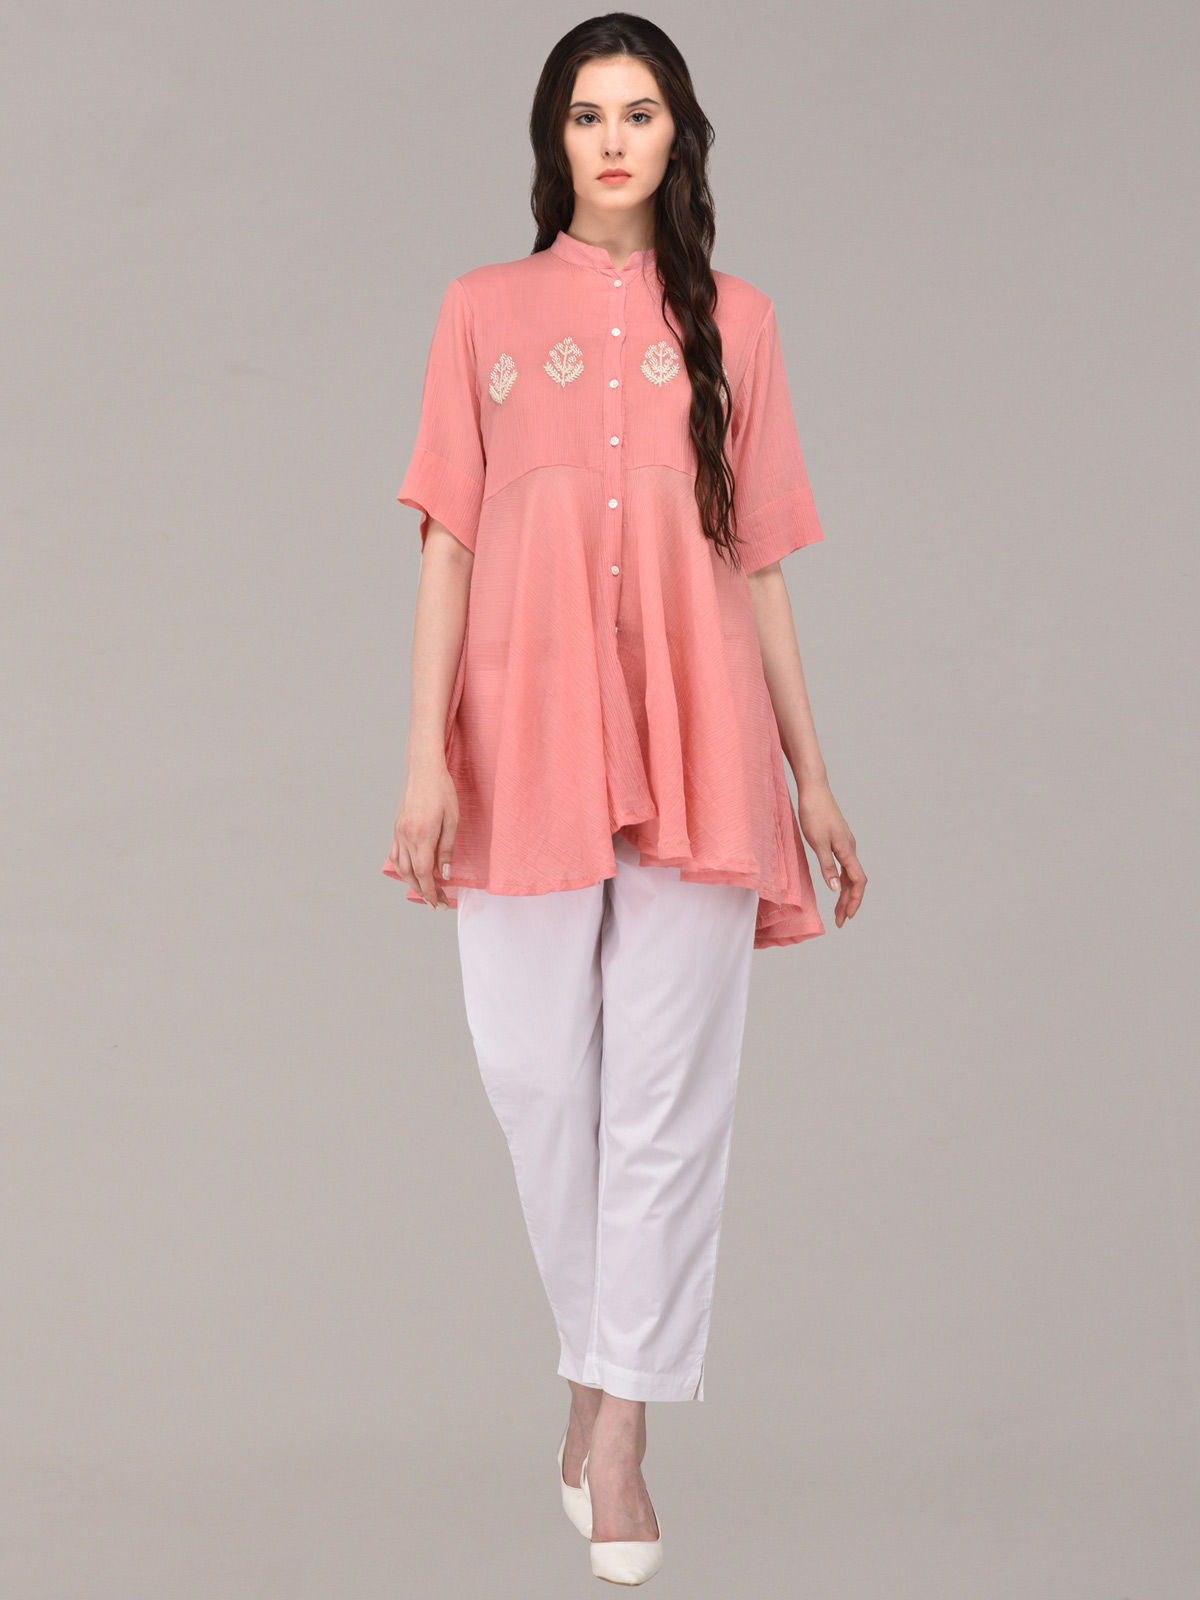 Panachee hand embroidered pink pure cotton top